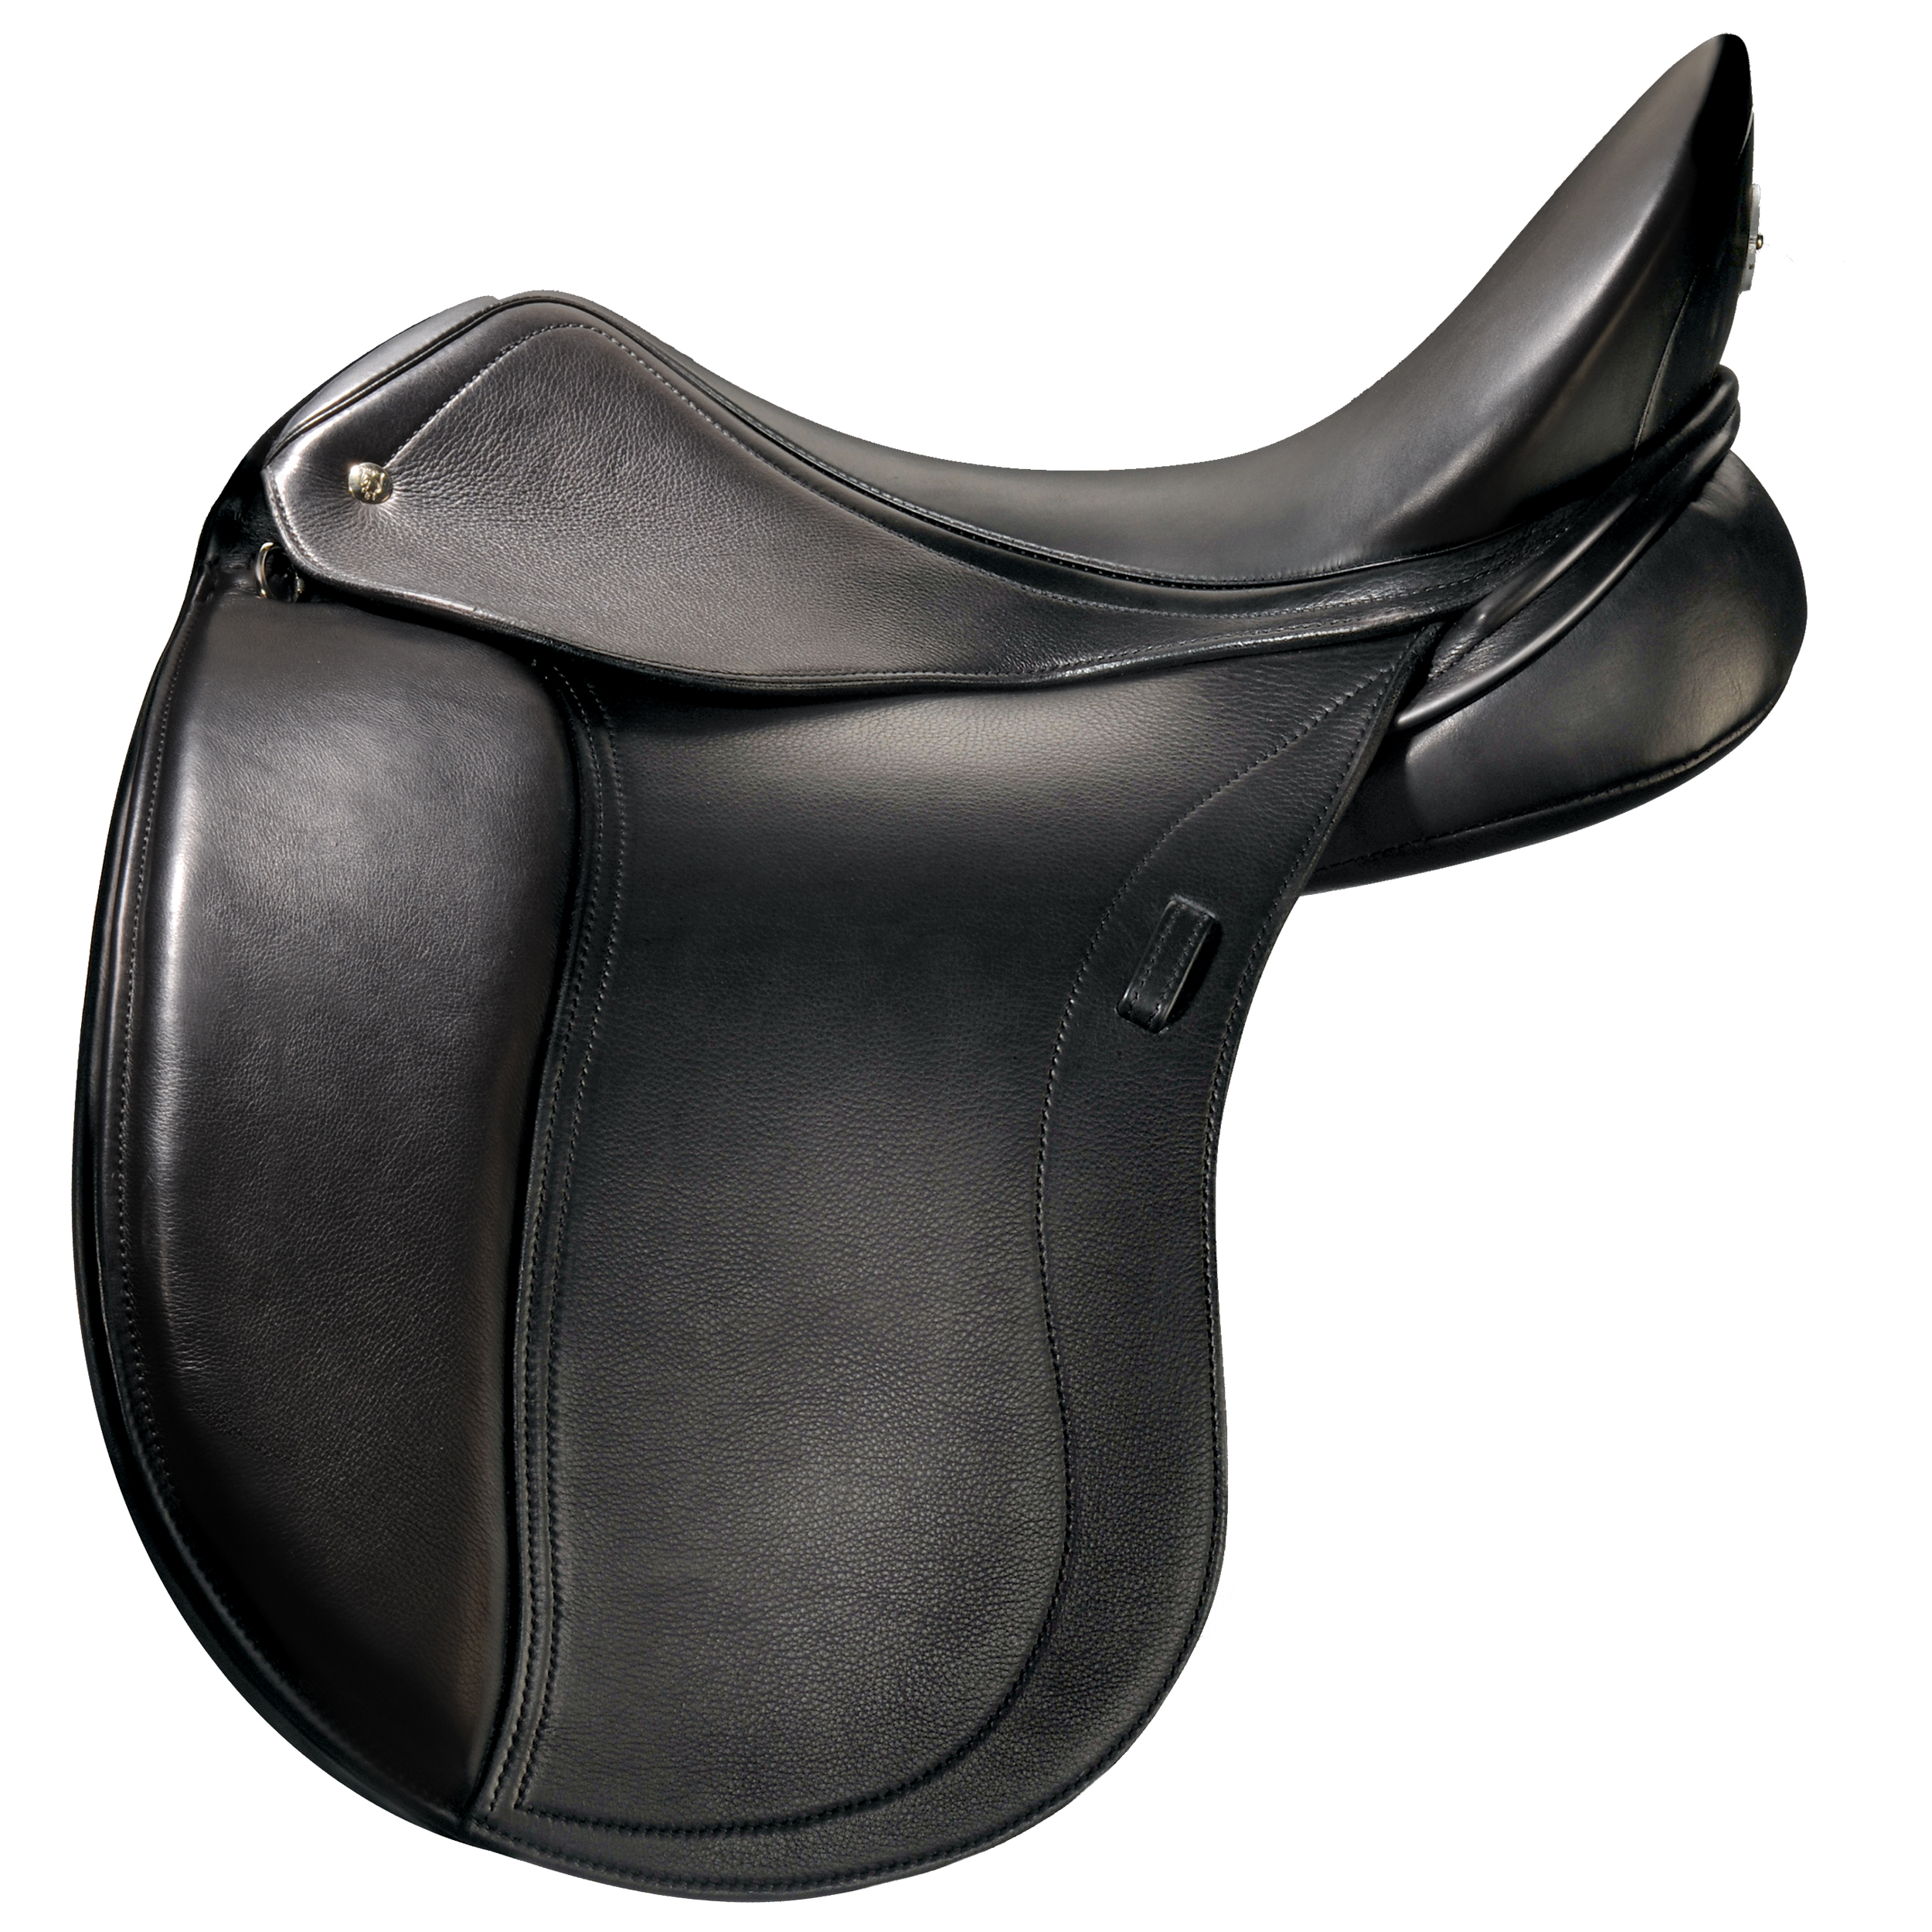 HK Dressage Saddle